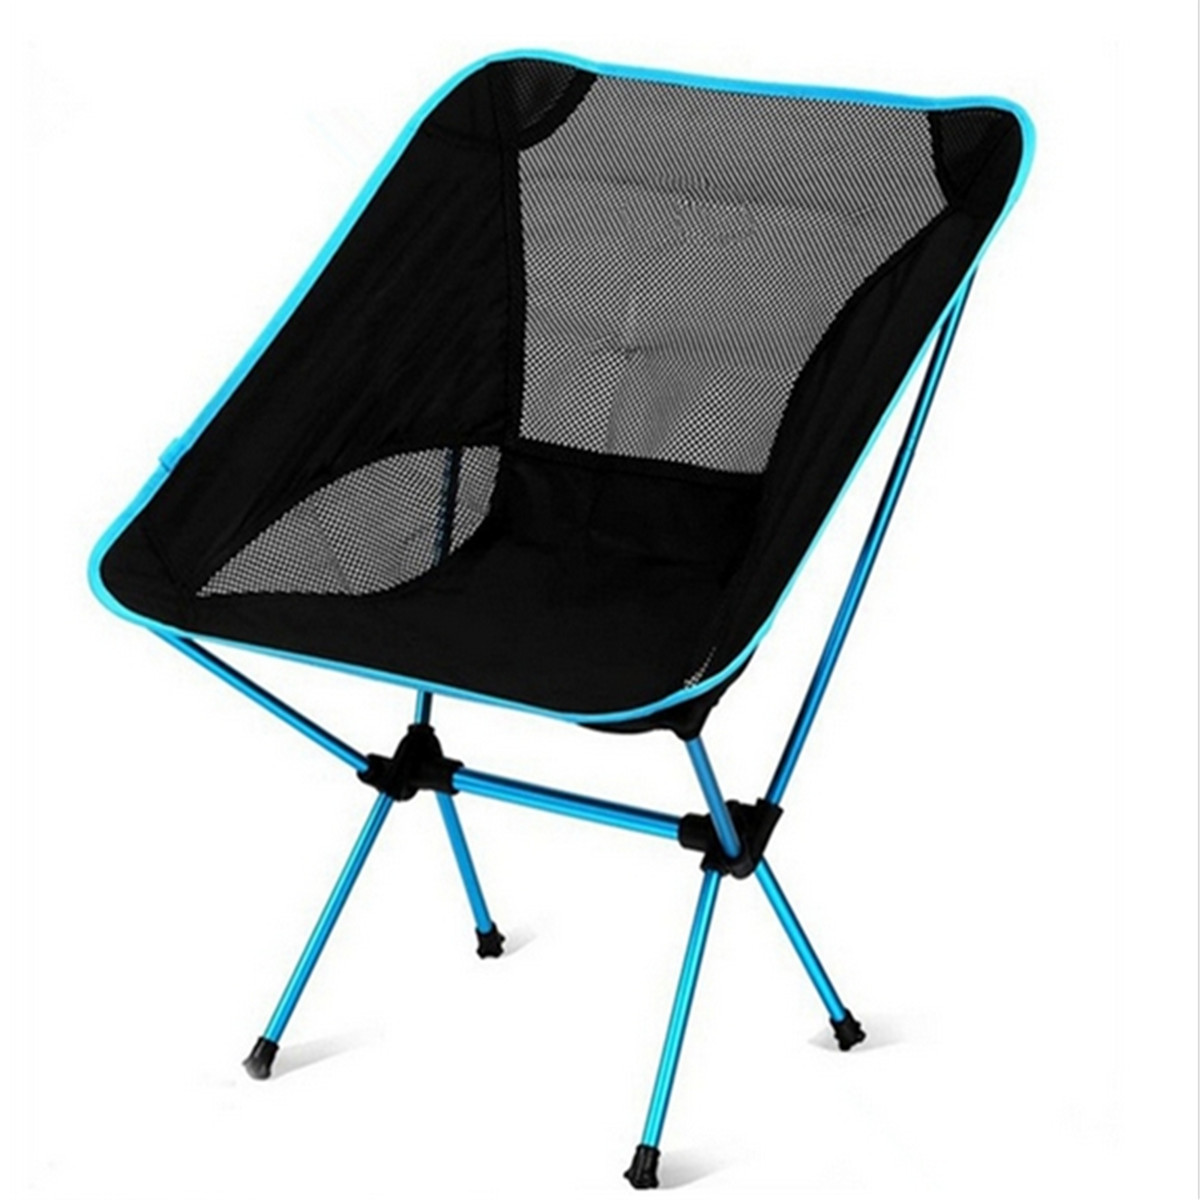 Portable Outdoor Folding Seat Stool Fishing Camping Garden Beach Chair Carry